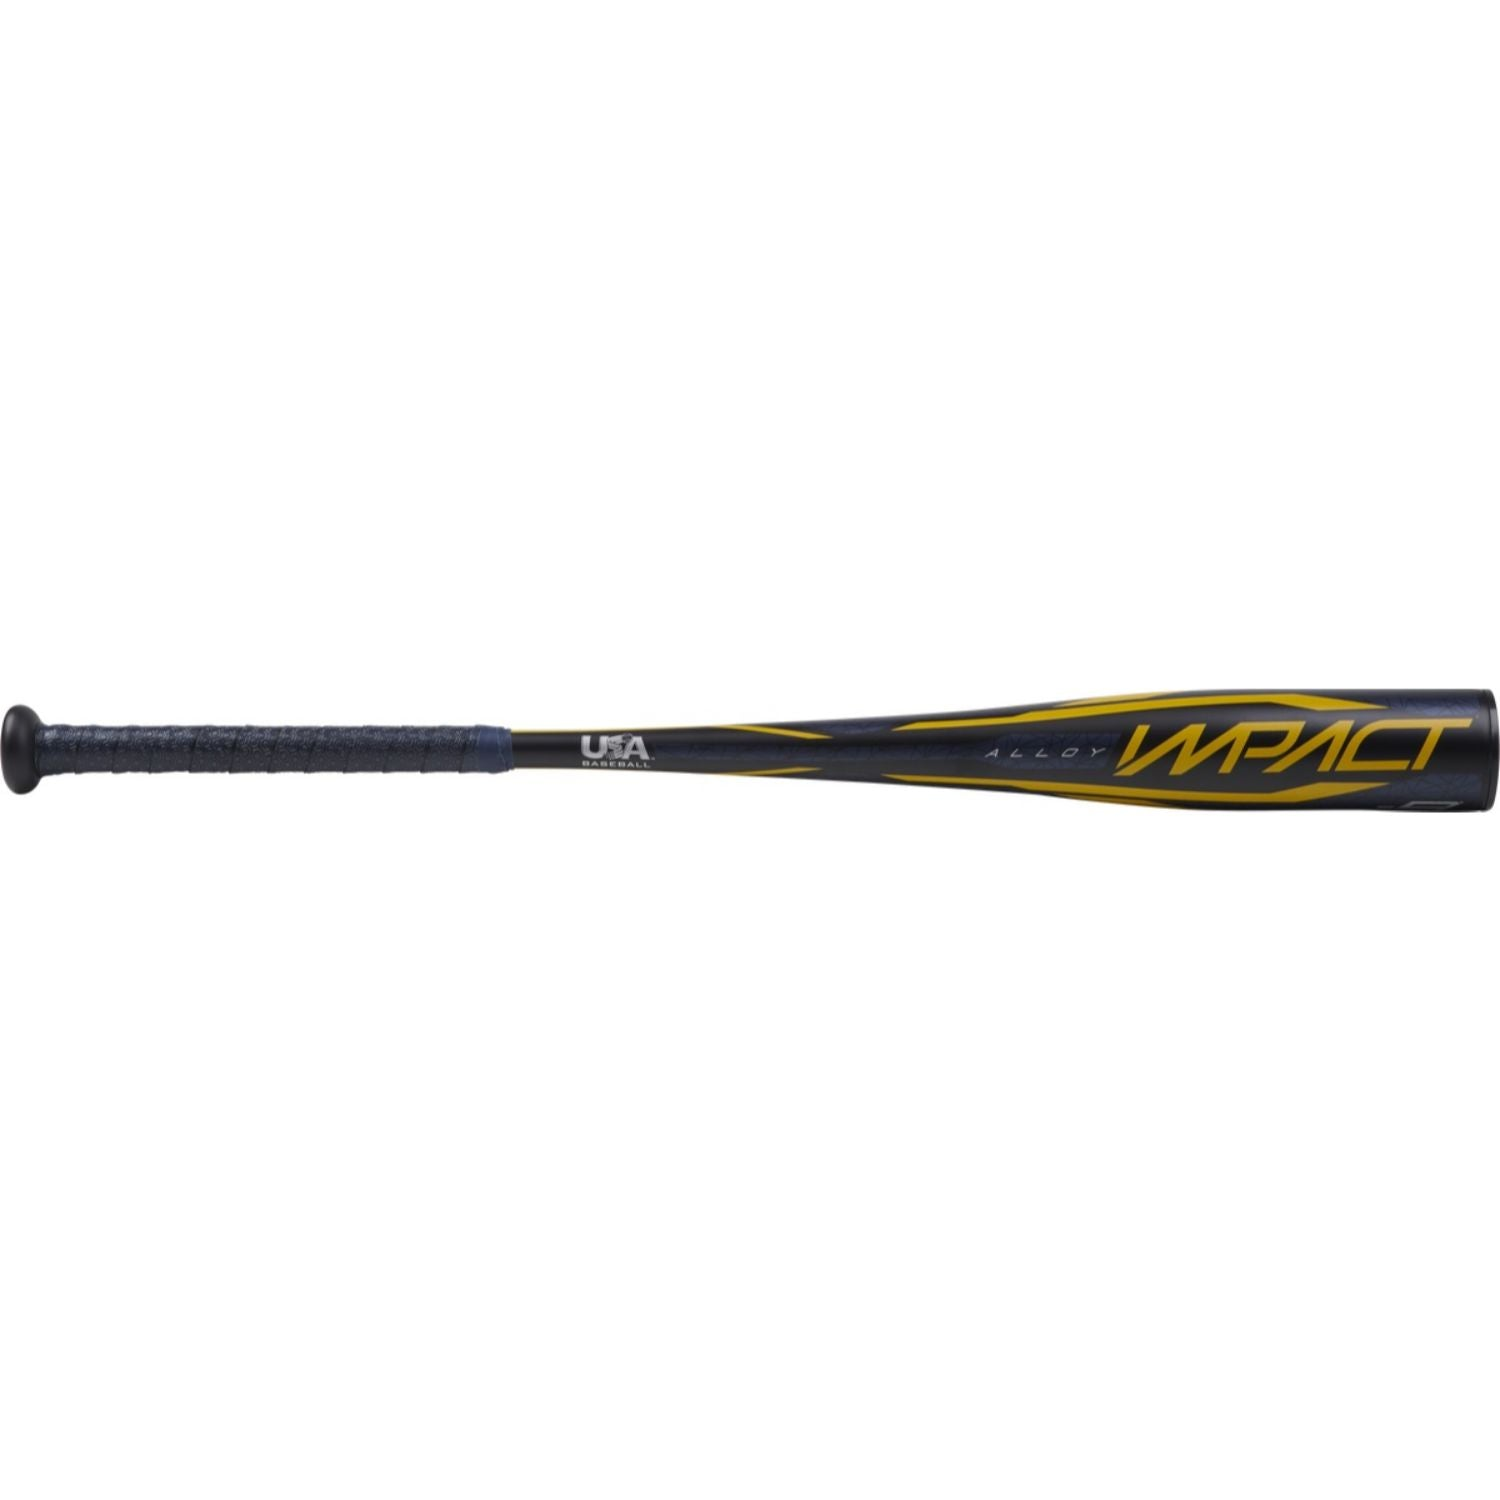 Rawlings 2020 29 in 20 oz Youth Impact Youth USA Bat -9 - Sports Butler